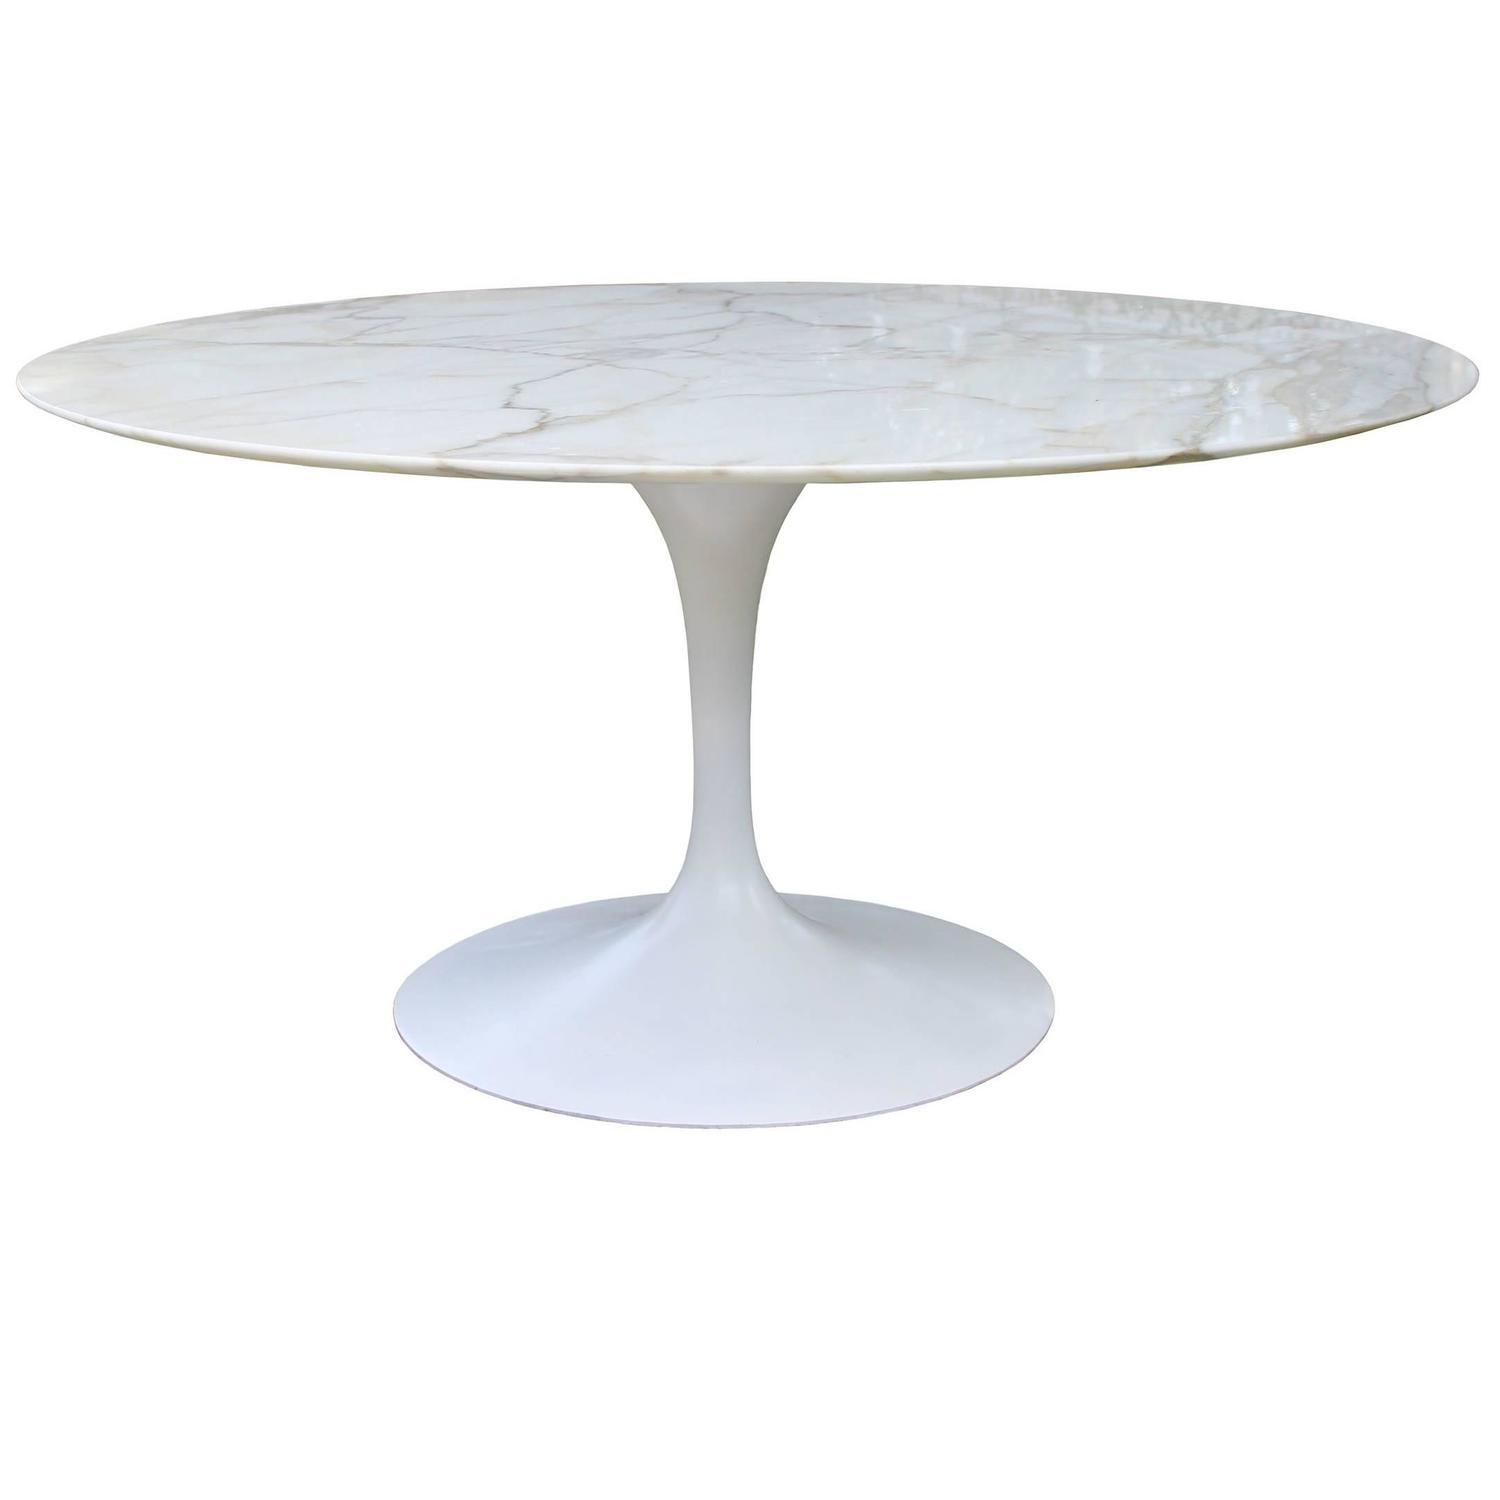 Saarinen Marble Top Table at 1stdibs